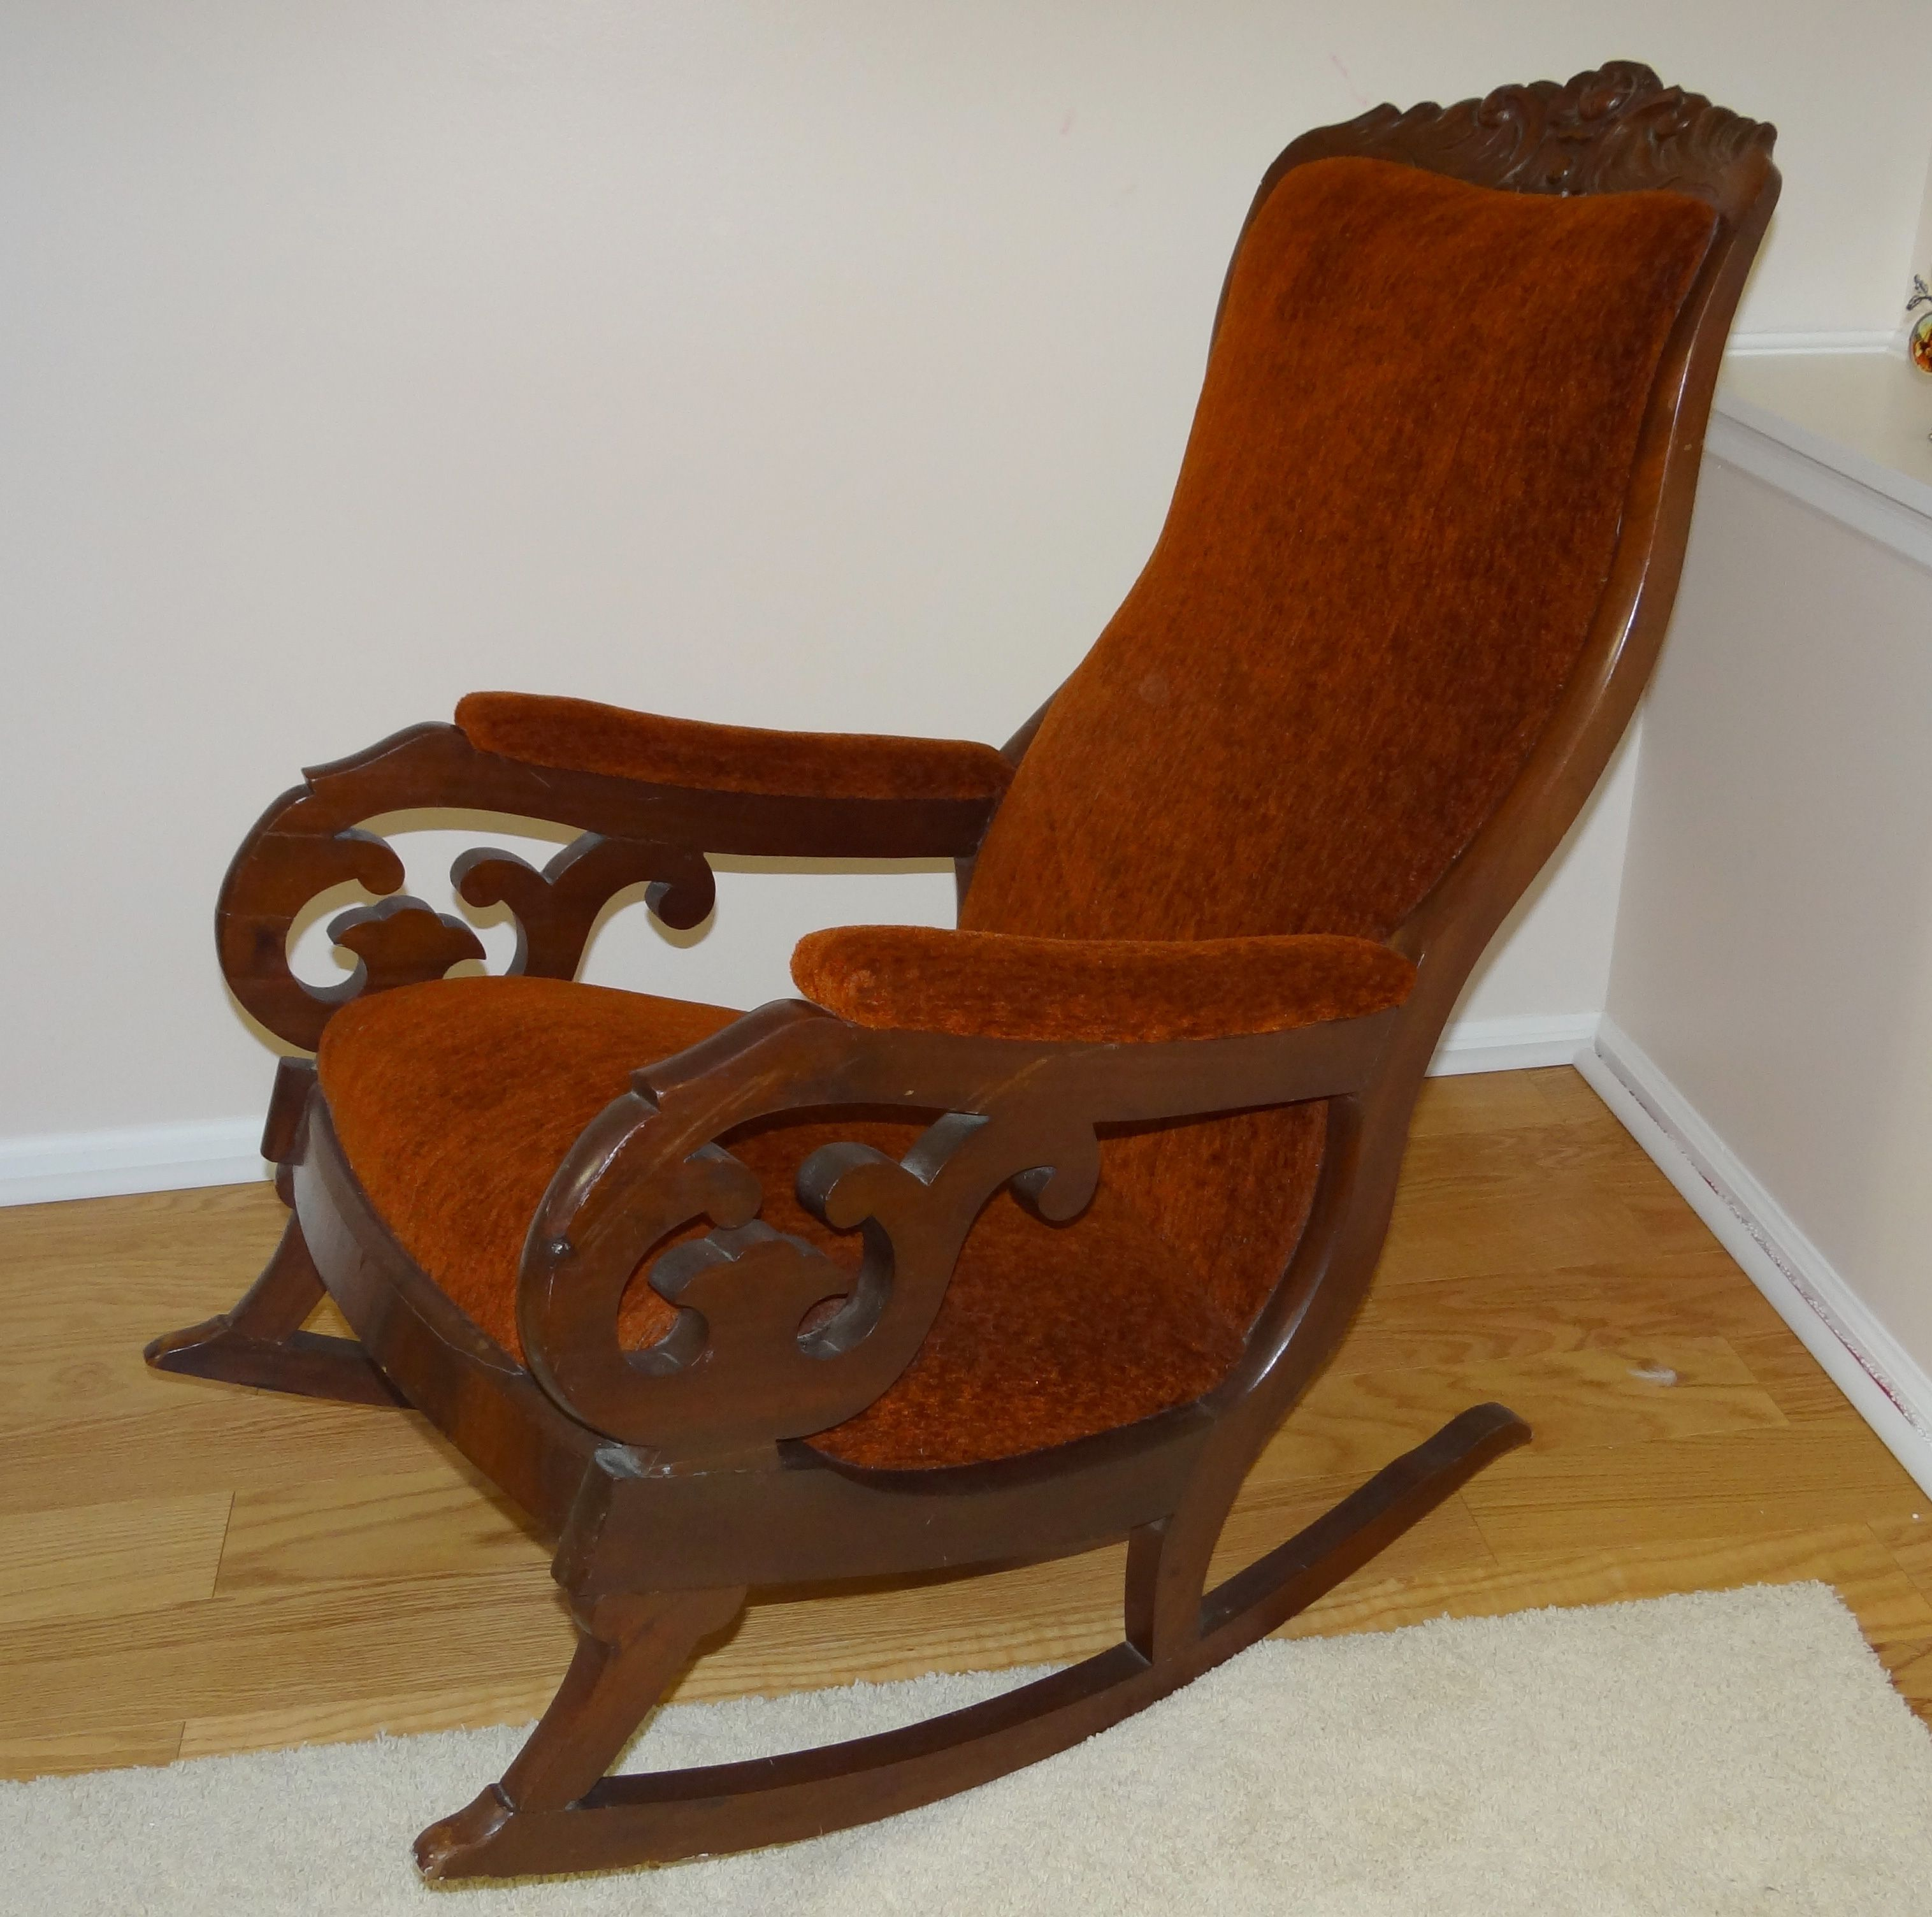 Upholstered Rocking Chair Rocking Chair On Pinterest Upholstered Rocking Chairs